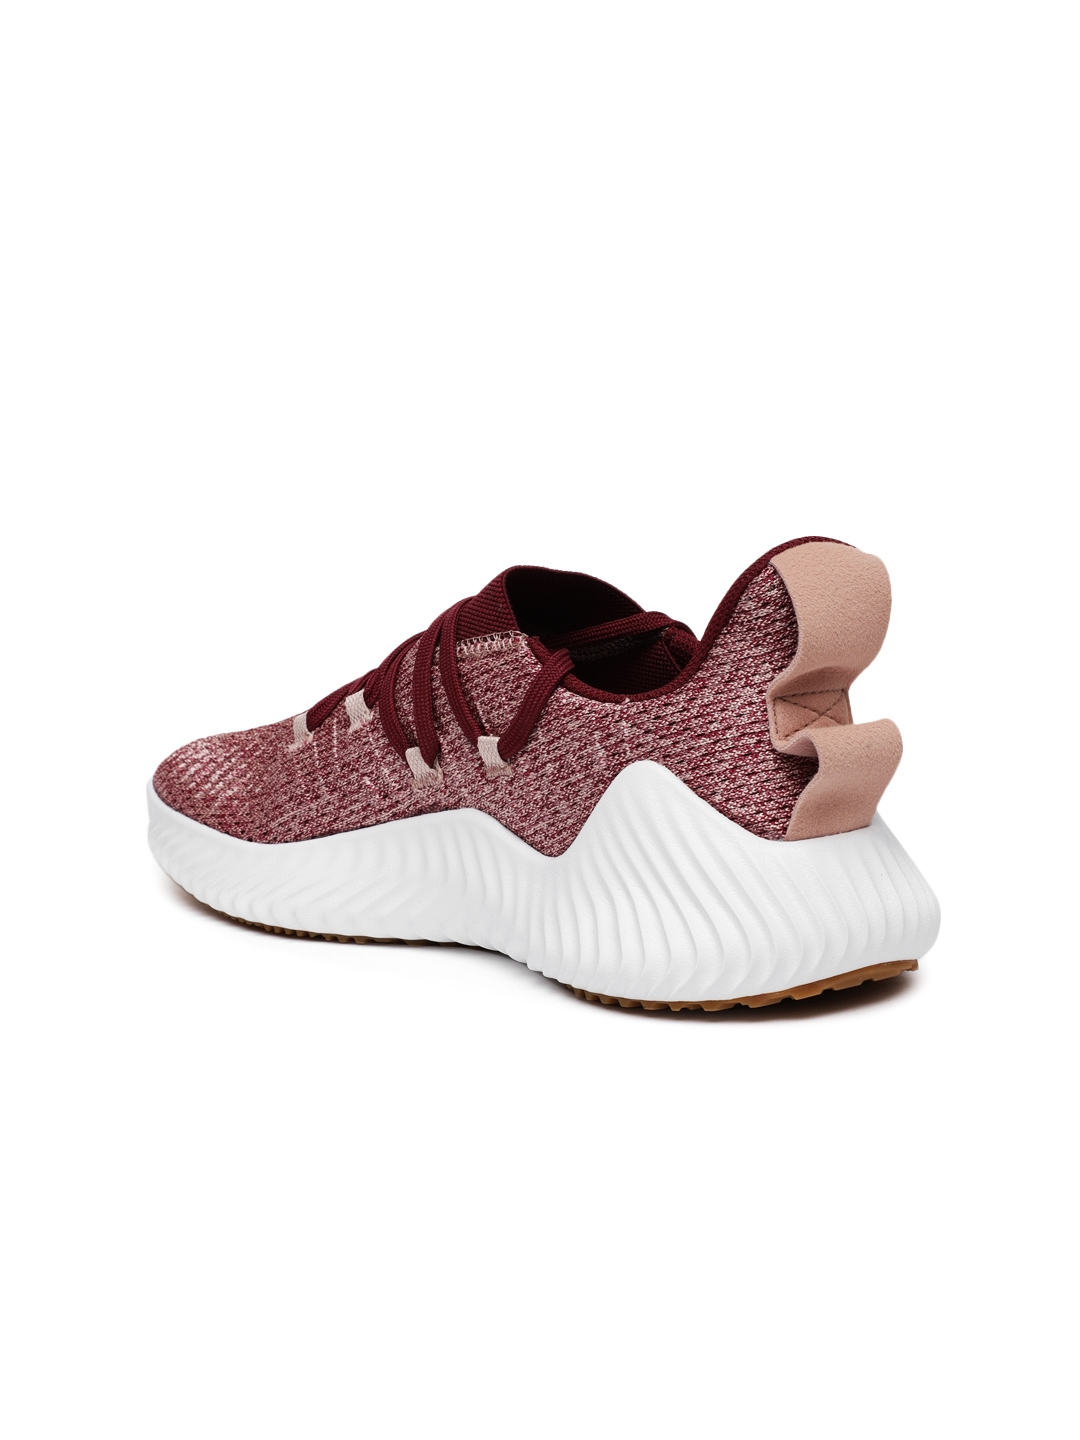 new product 2c530 add1b ADIDAS Women Maroon ALPHABOUNCE Training Shoes